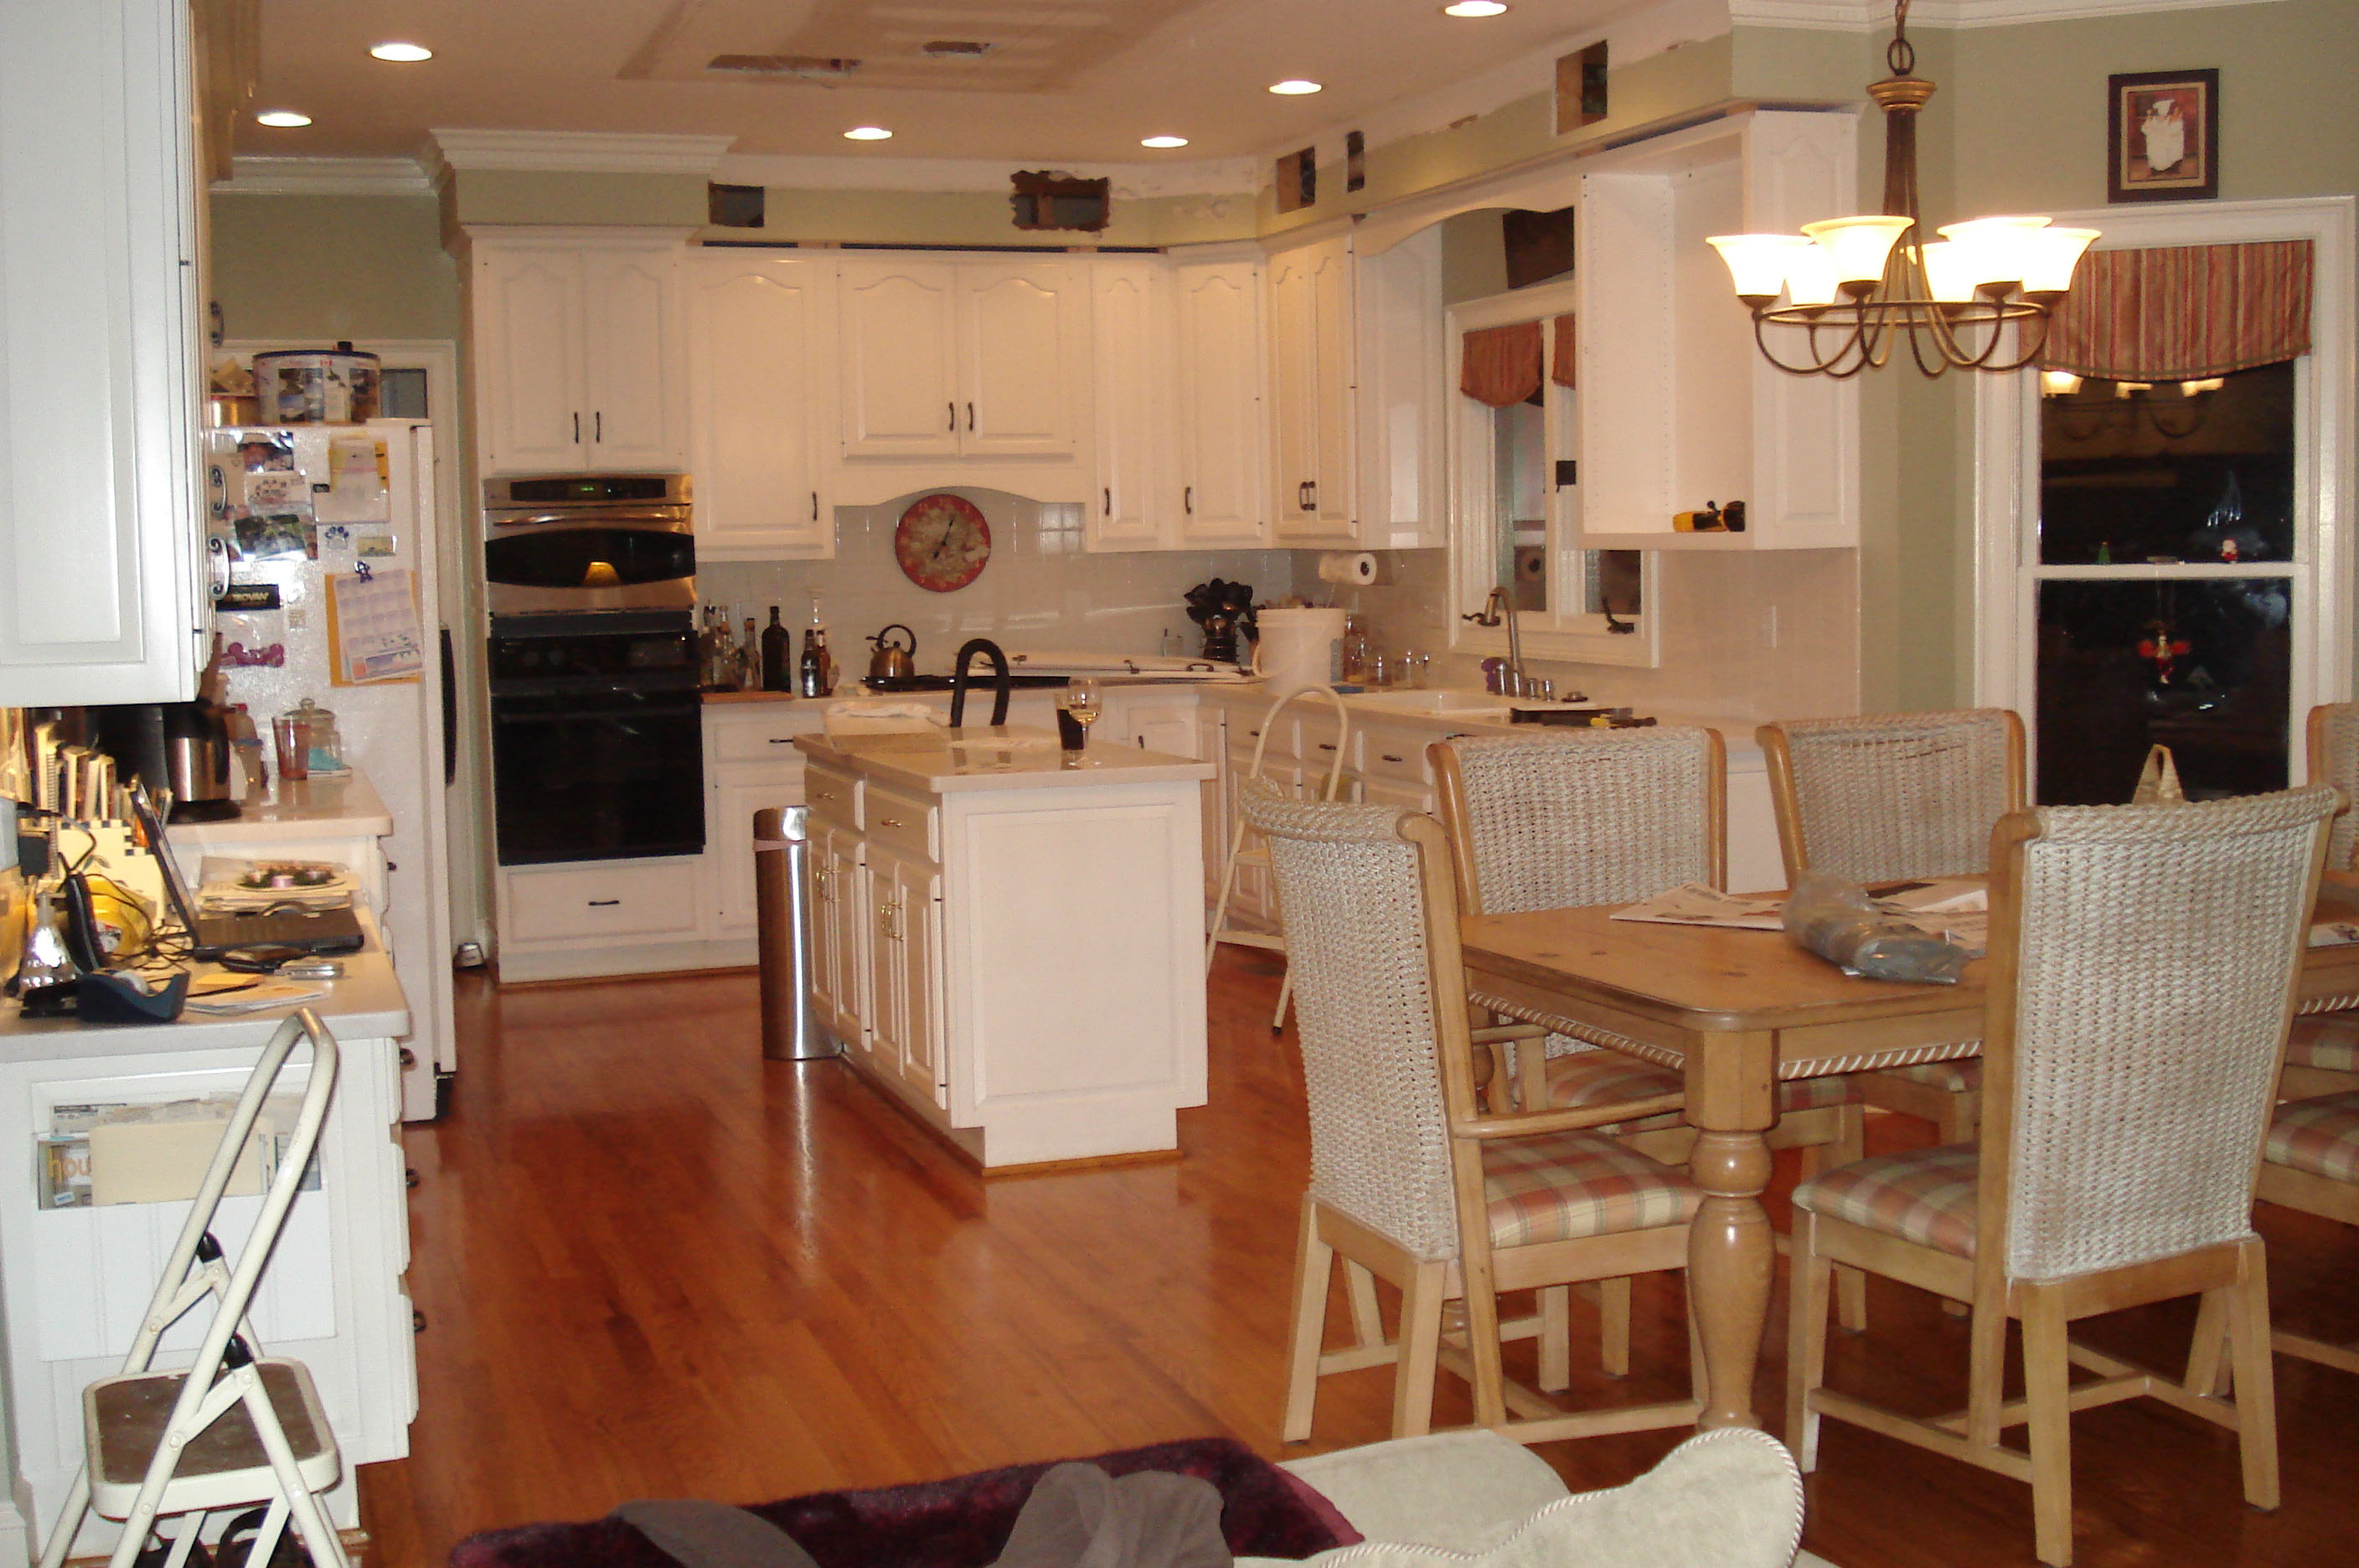 Genial Kitchen Remodel Before Picture Allen David Cabinetry (980) 722 9186